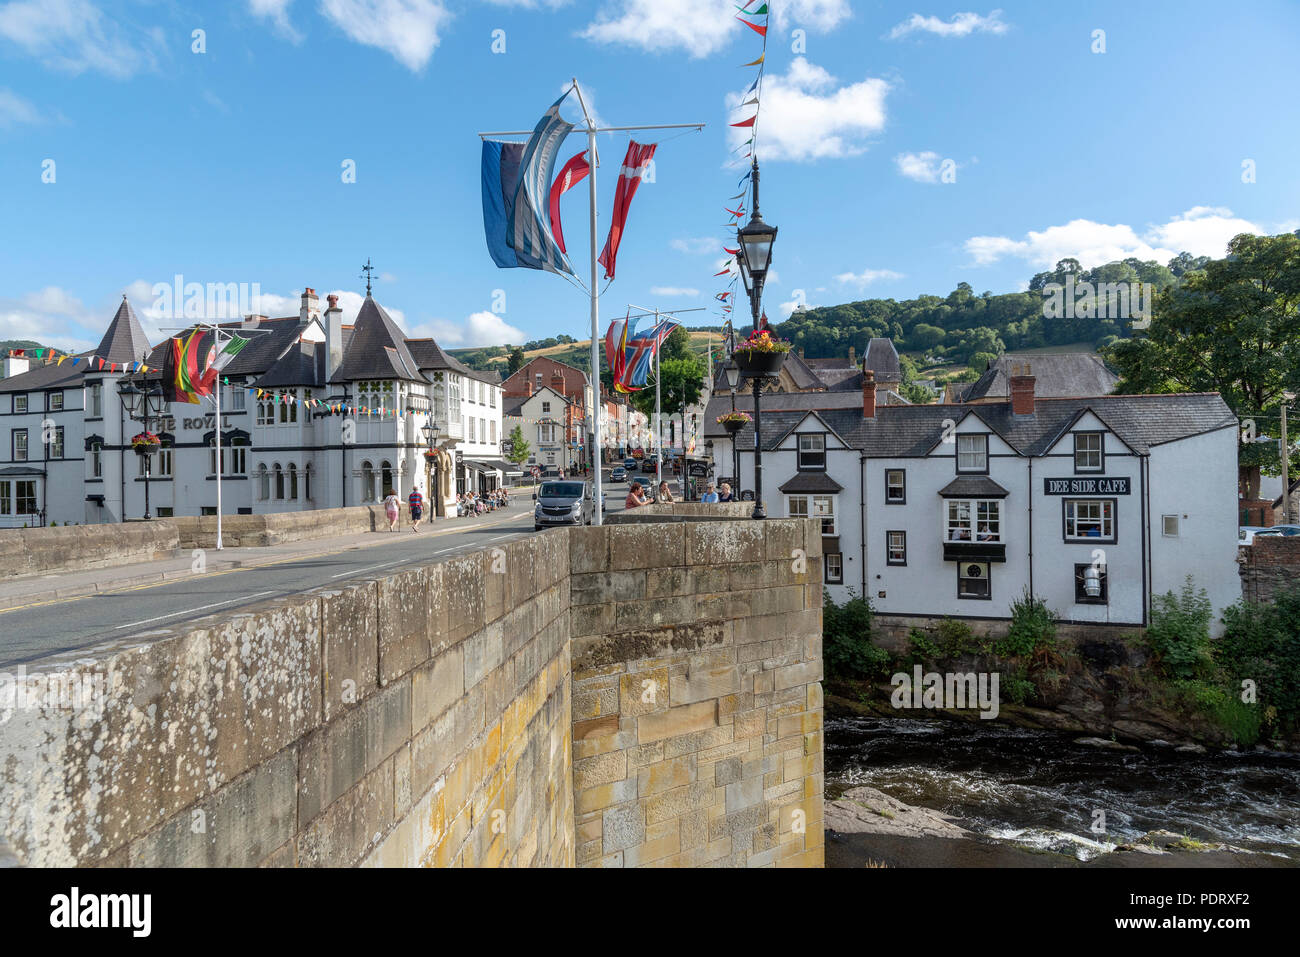 Llangollen, Denbighshire, North Wales, UK. A popular tourist attraction which stands on the River Dee. - Stock Image